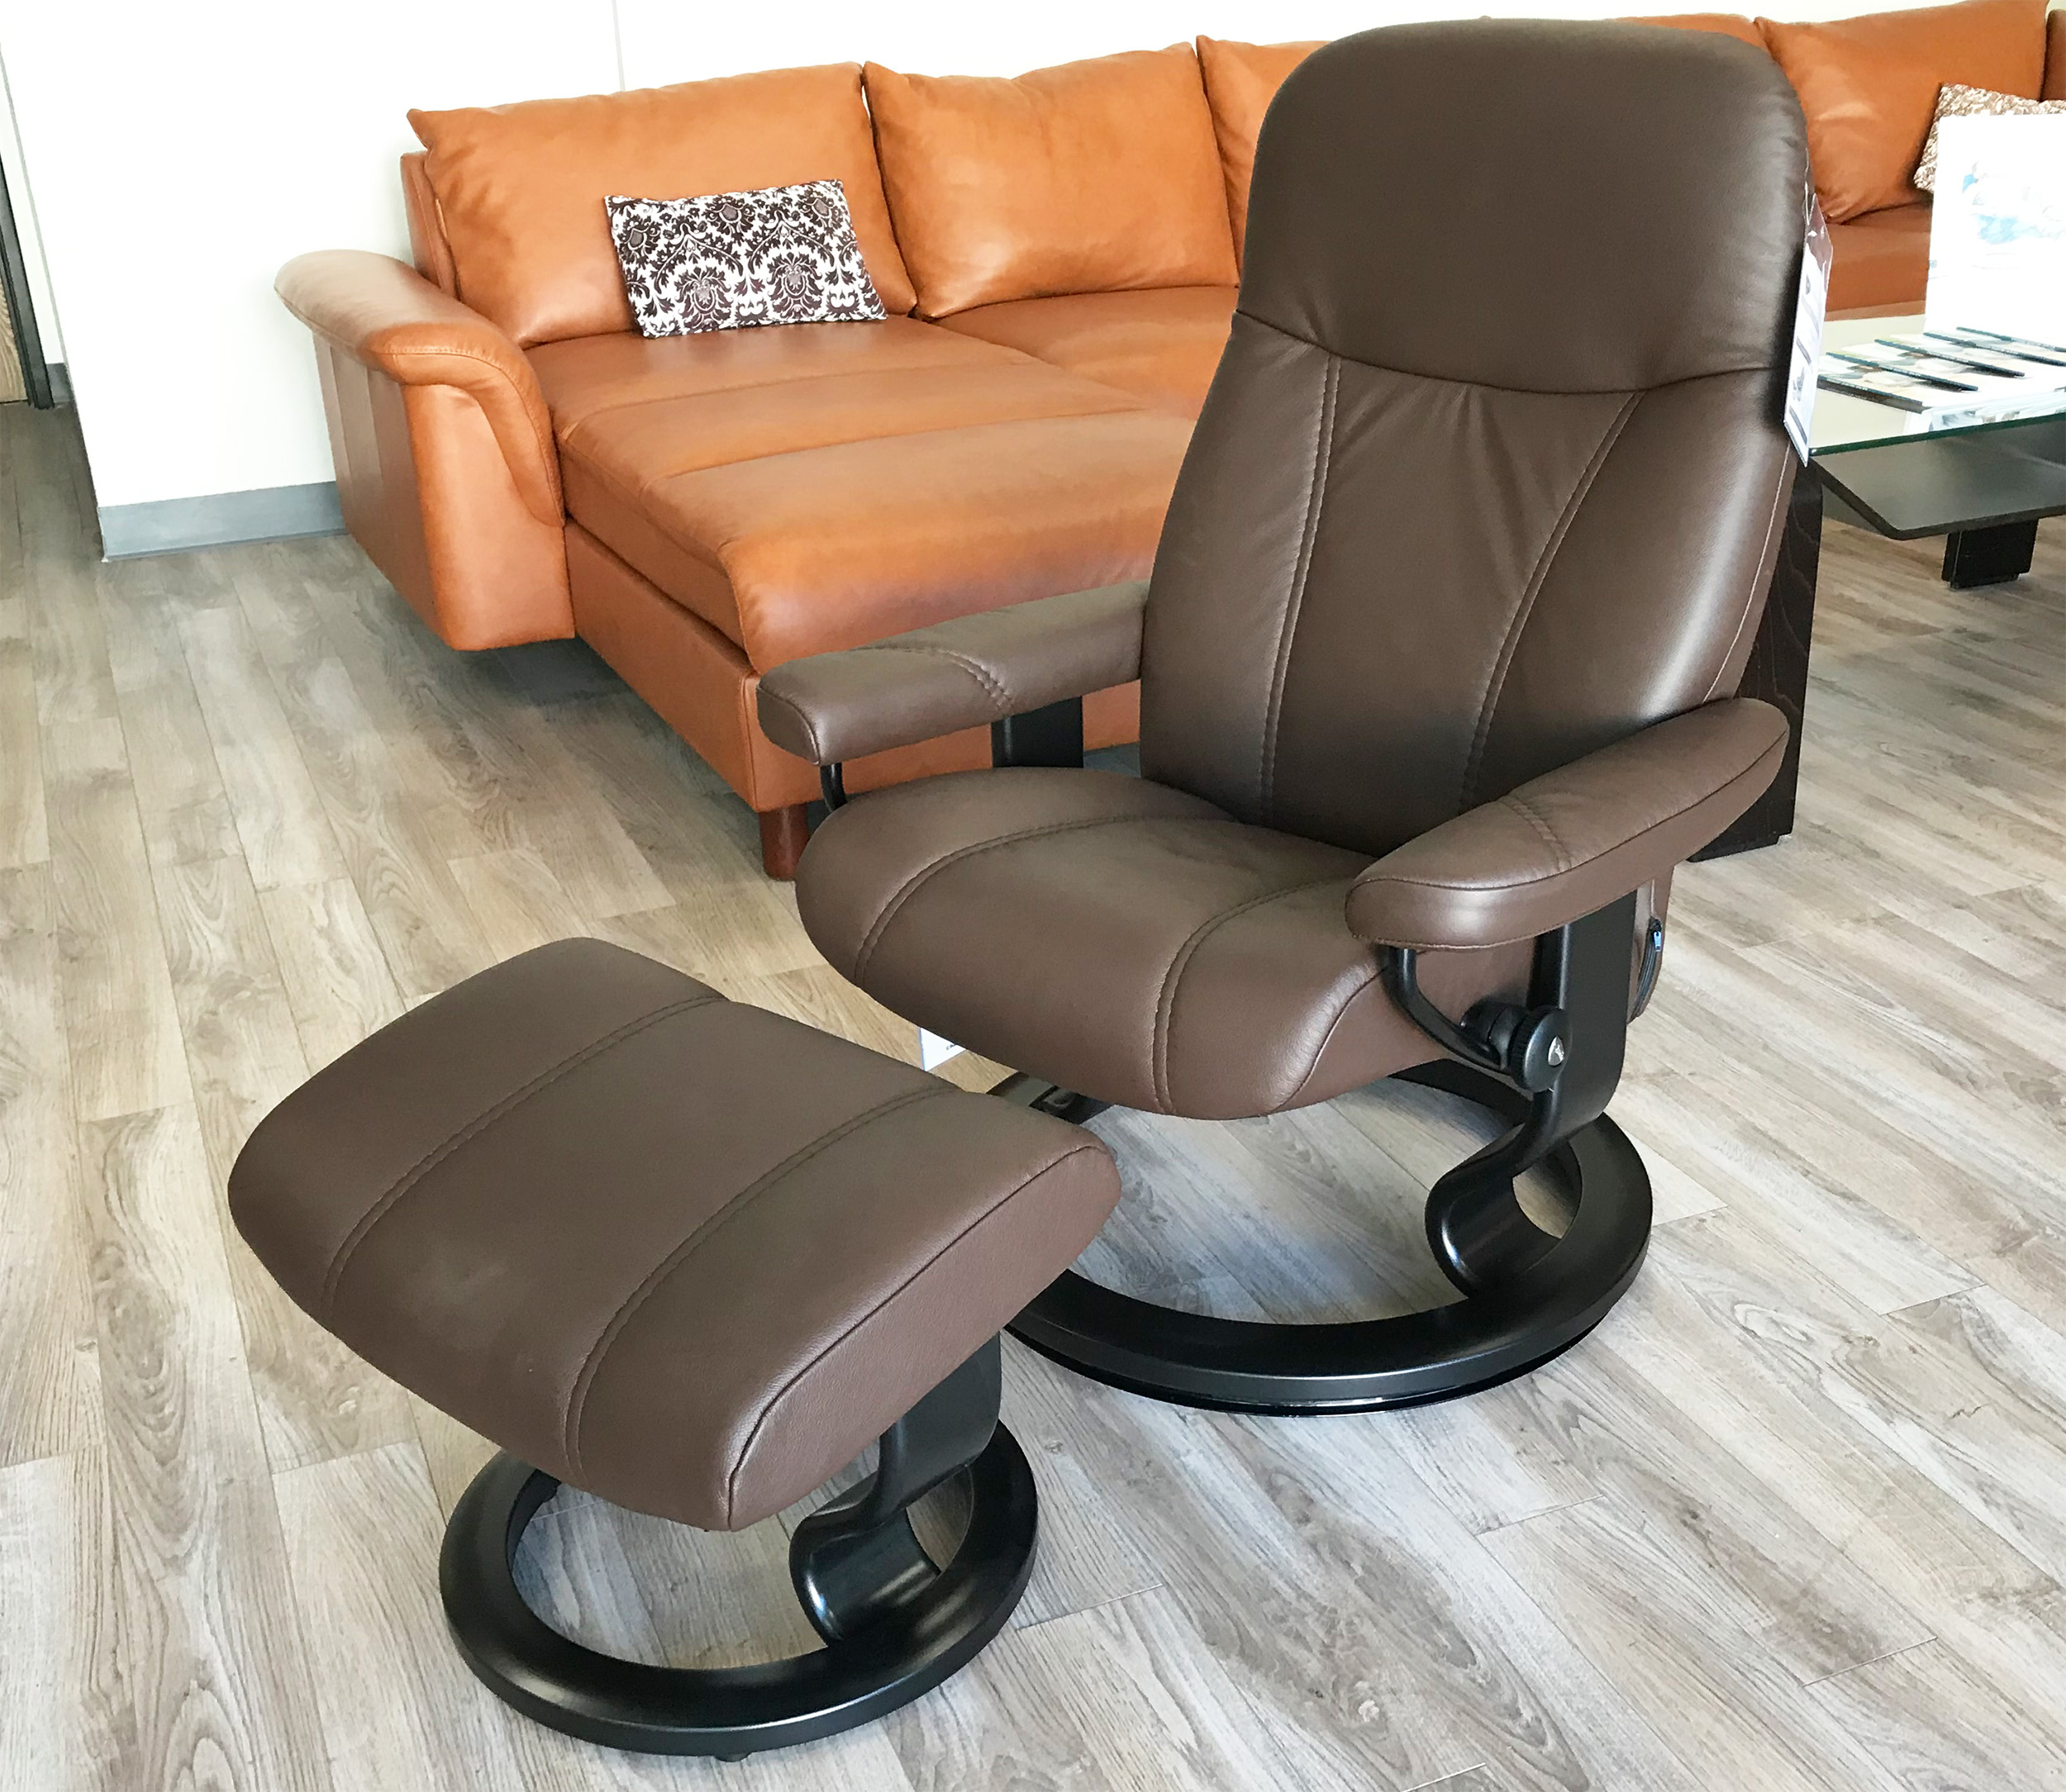 Prime Stressless Ekornes Consul Batick Brown Leather Recliner Chair And Ottoman Dailytribune Chair Design For Home Dailytribuneorg